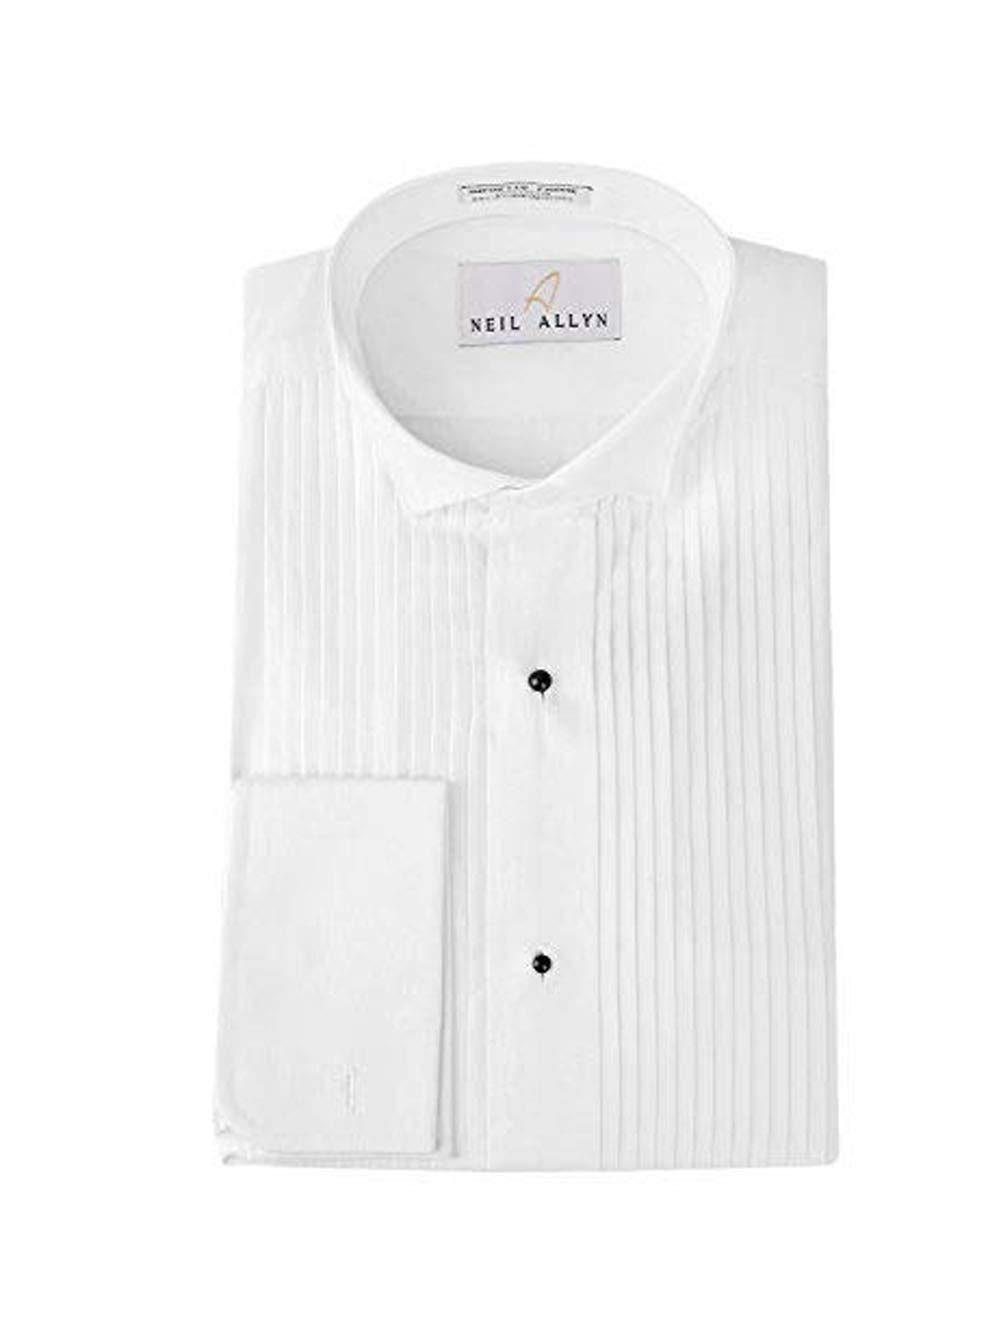 Tuxedo Shirt By Neil Allyn - 100% Cotton Wing Collar with French Cuffs (18 - 34/35) by Neil Allyn